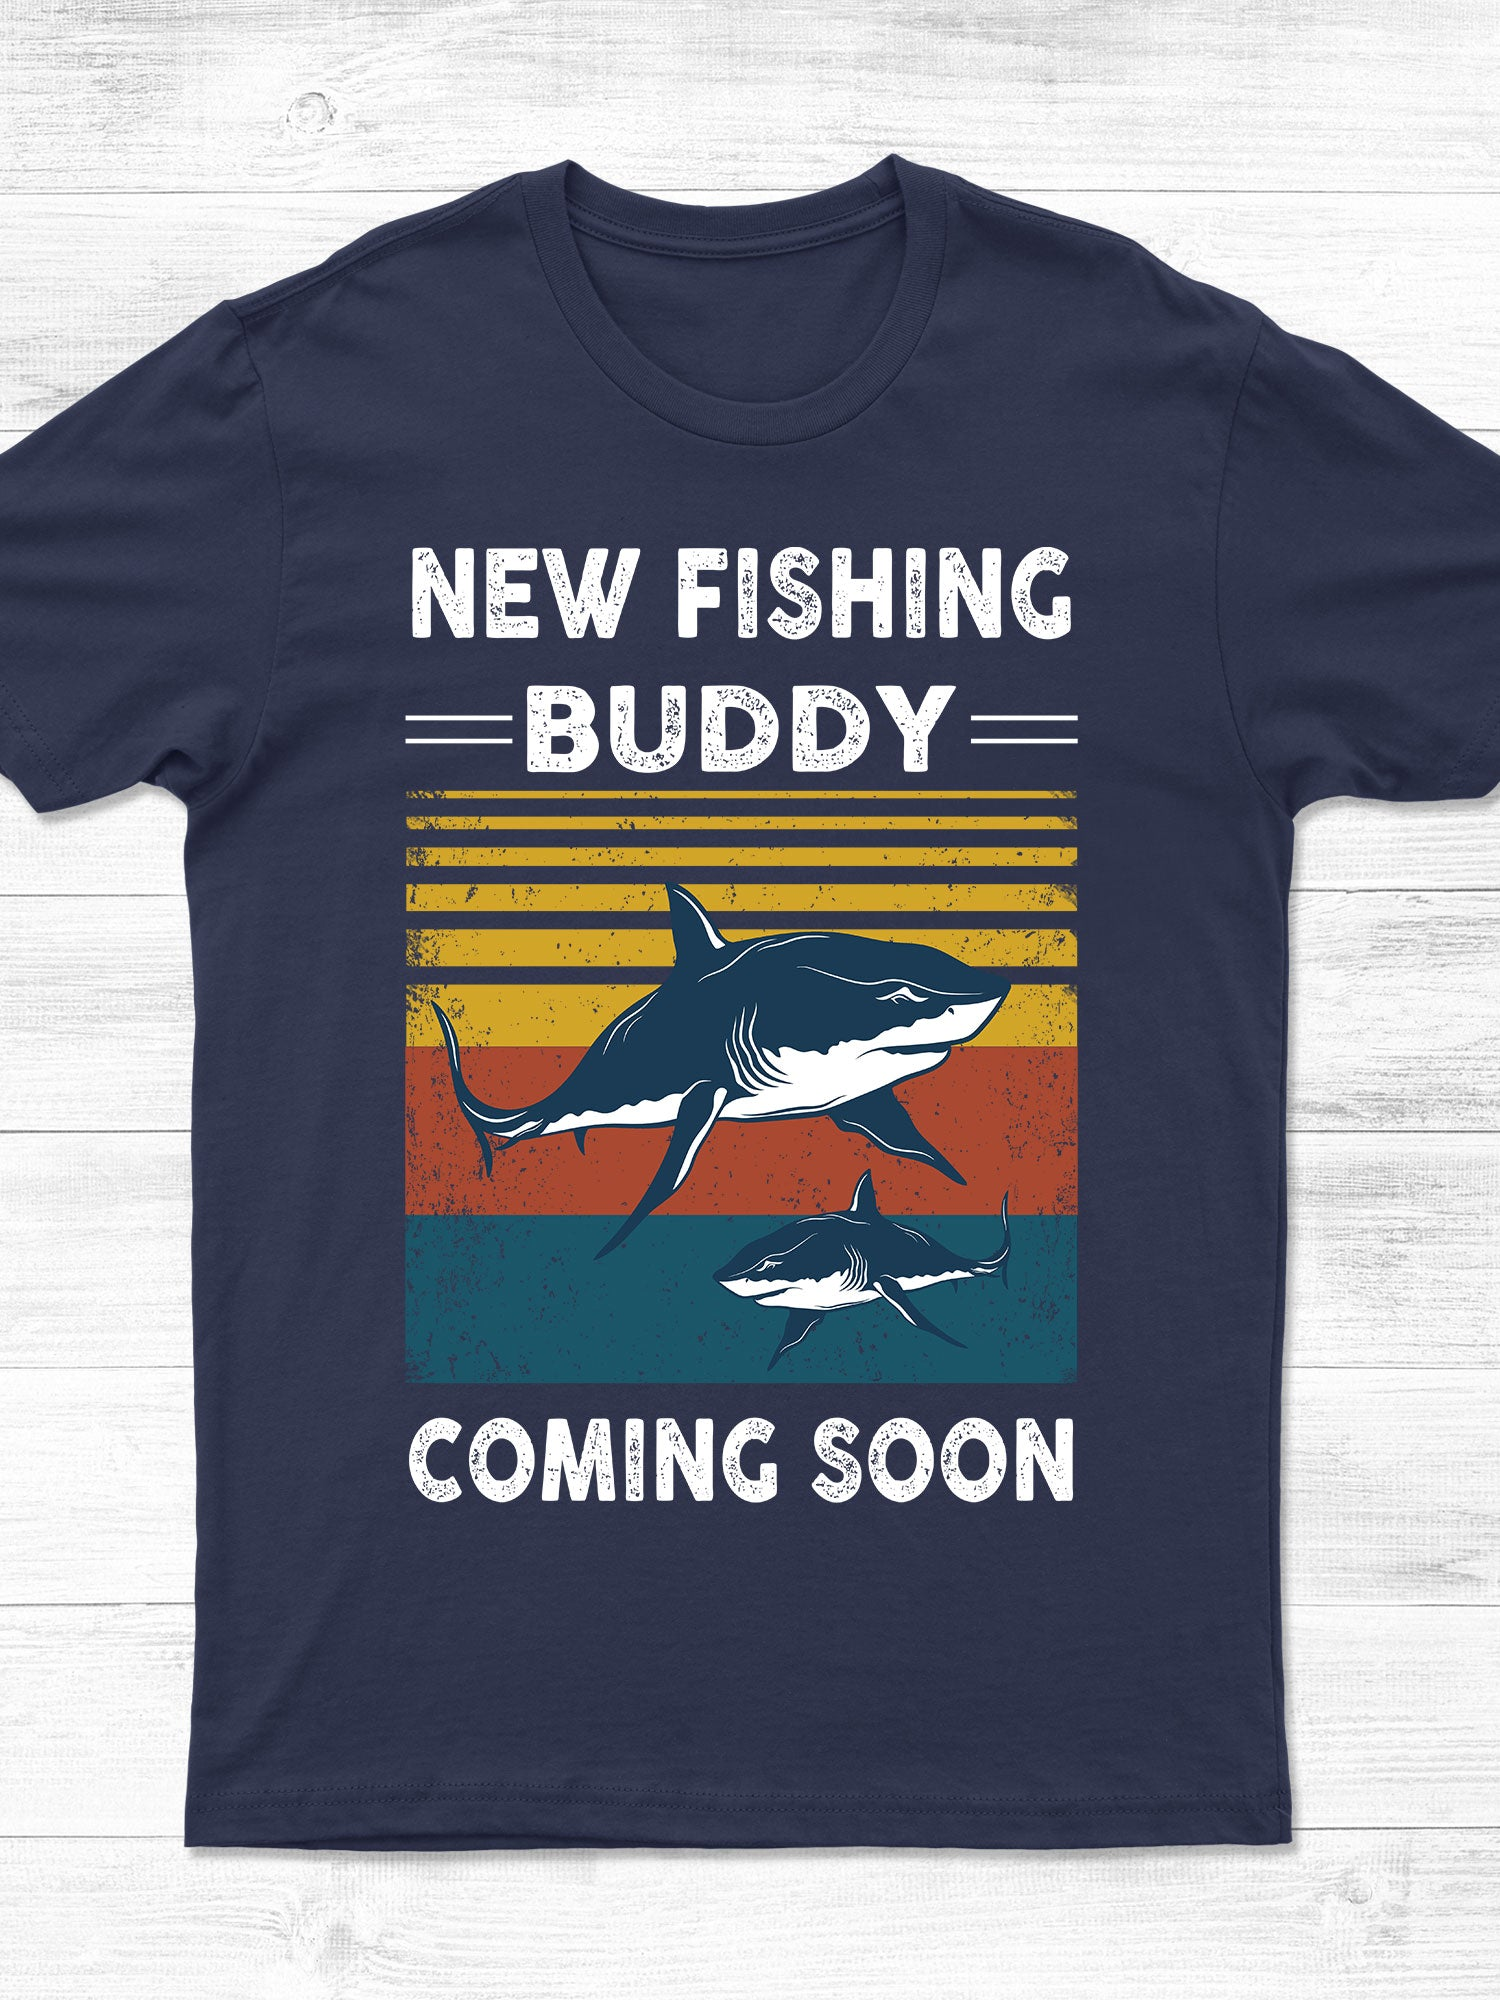 Classic T-shirt - New fishing buddy coming soon - Gifts for Dad to be - 8295